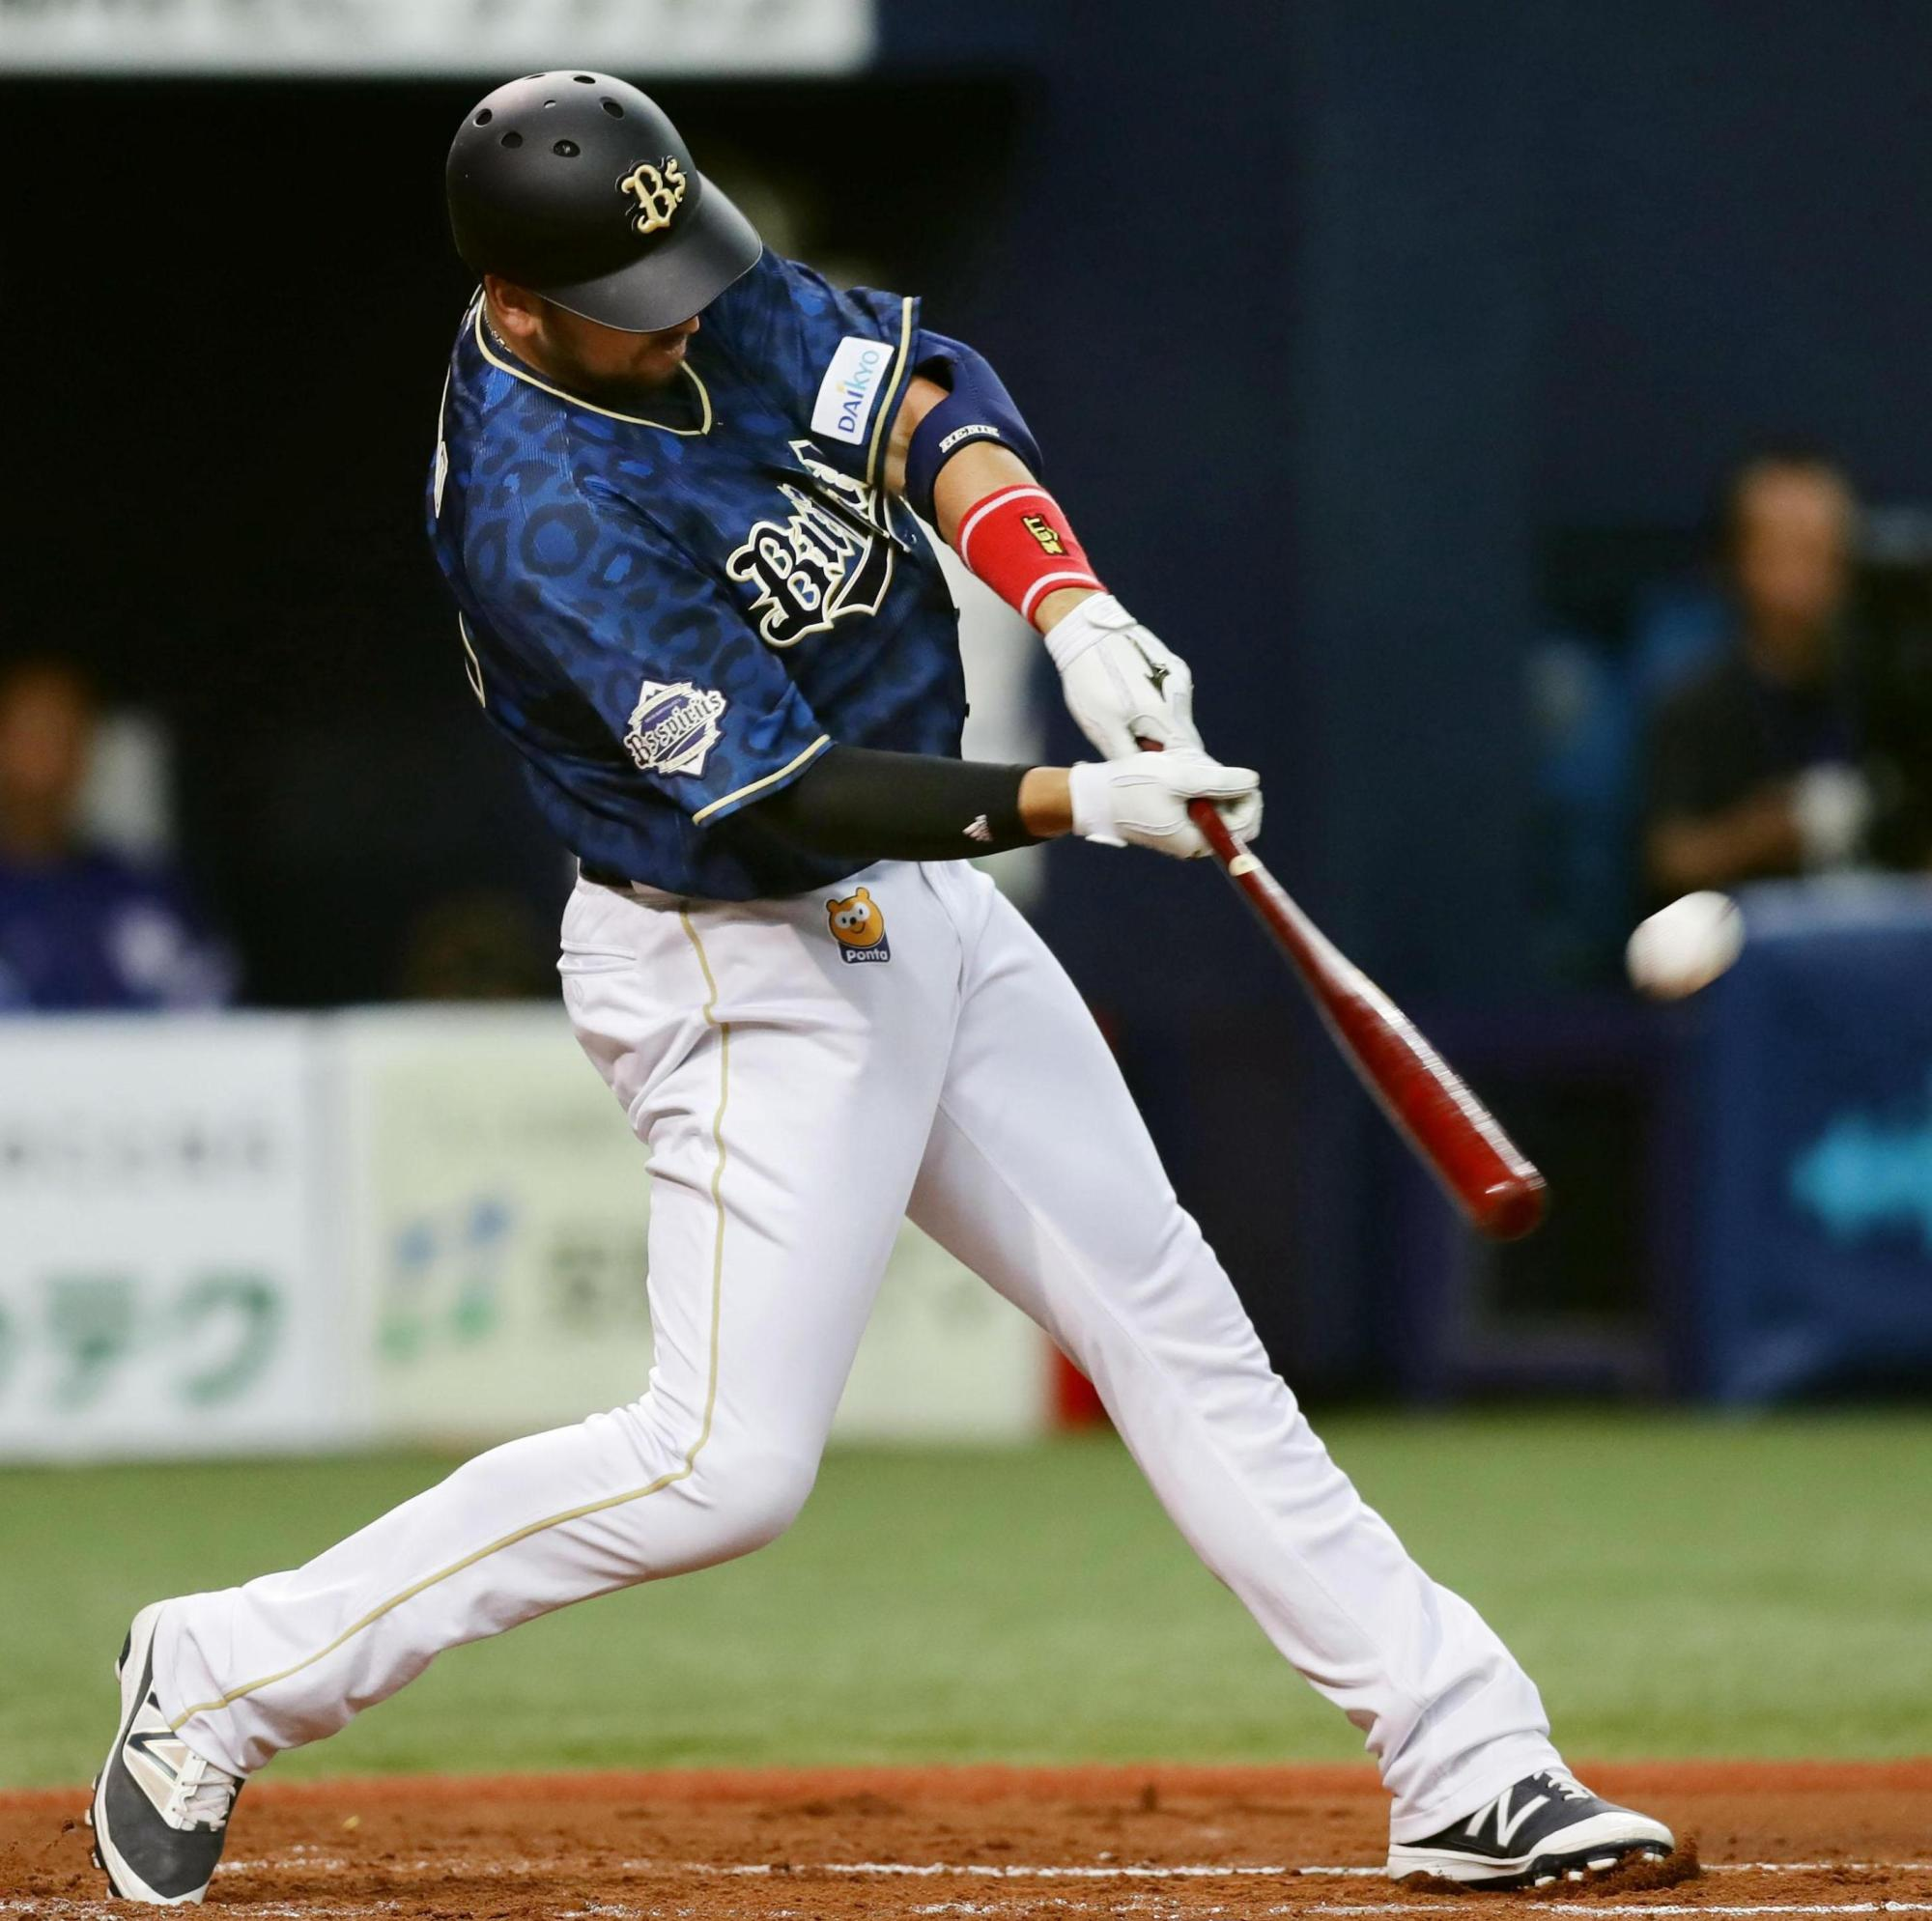 The Buffaloes' Orix's Chris Marrero hits a solo home run in the fourth inning against the Dragons on Saturday at Kyocera Dome. Orix defeated Chunichi 5-3. | KYODO